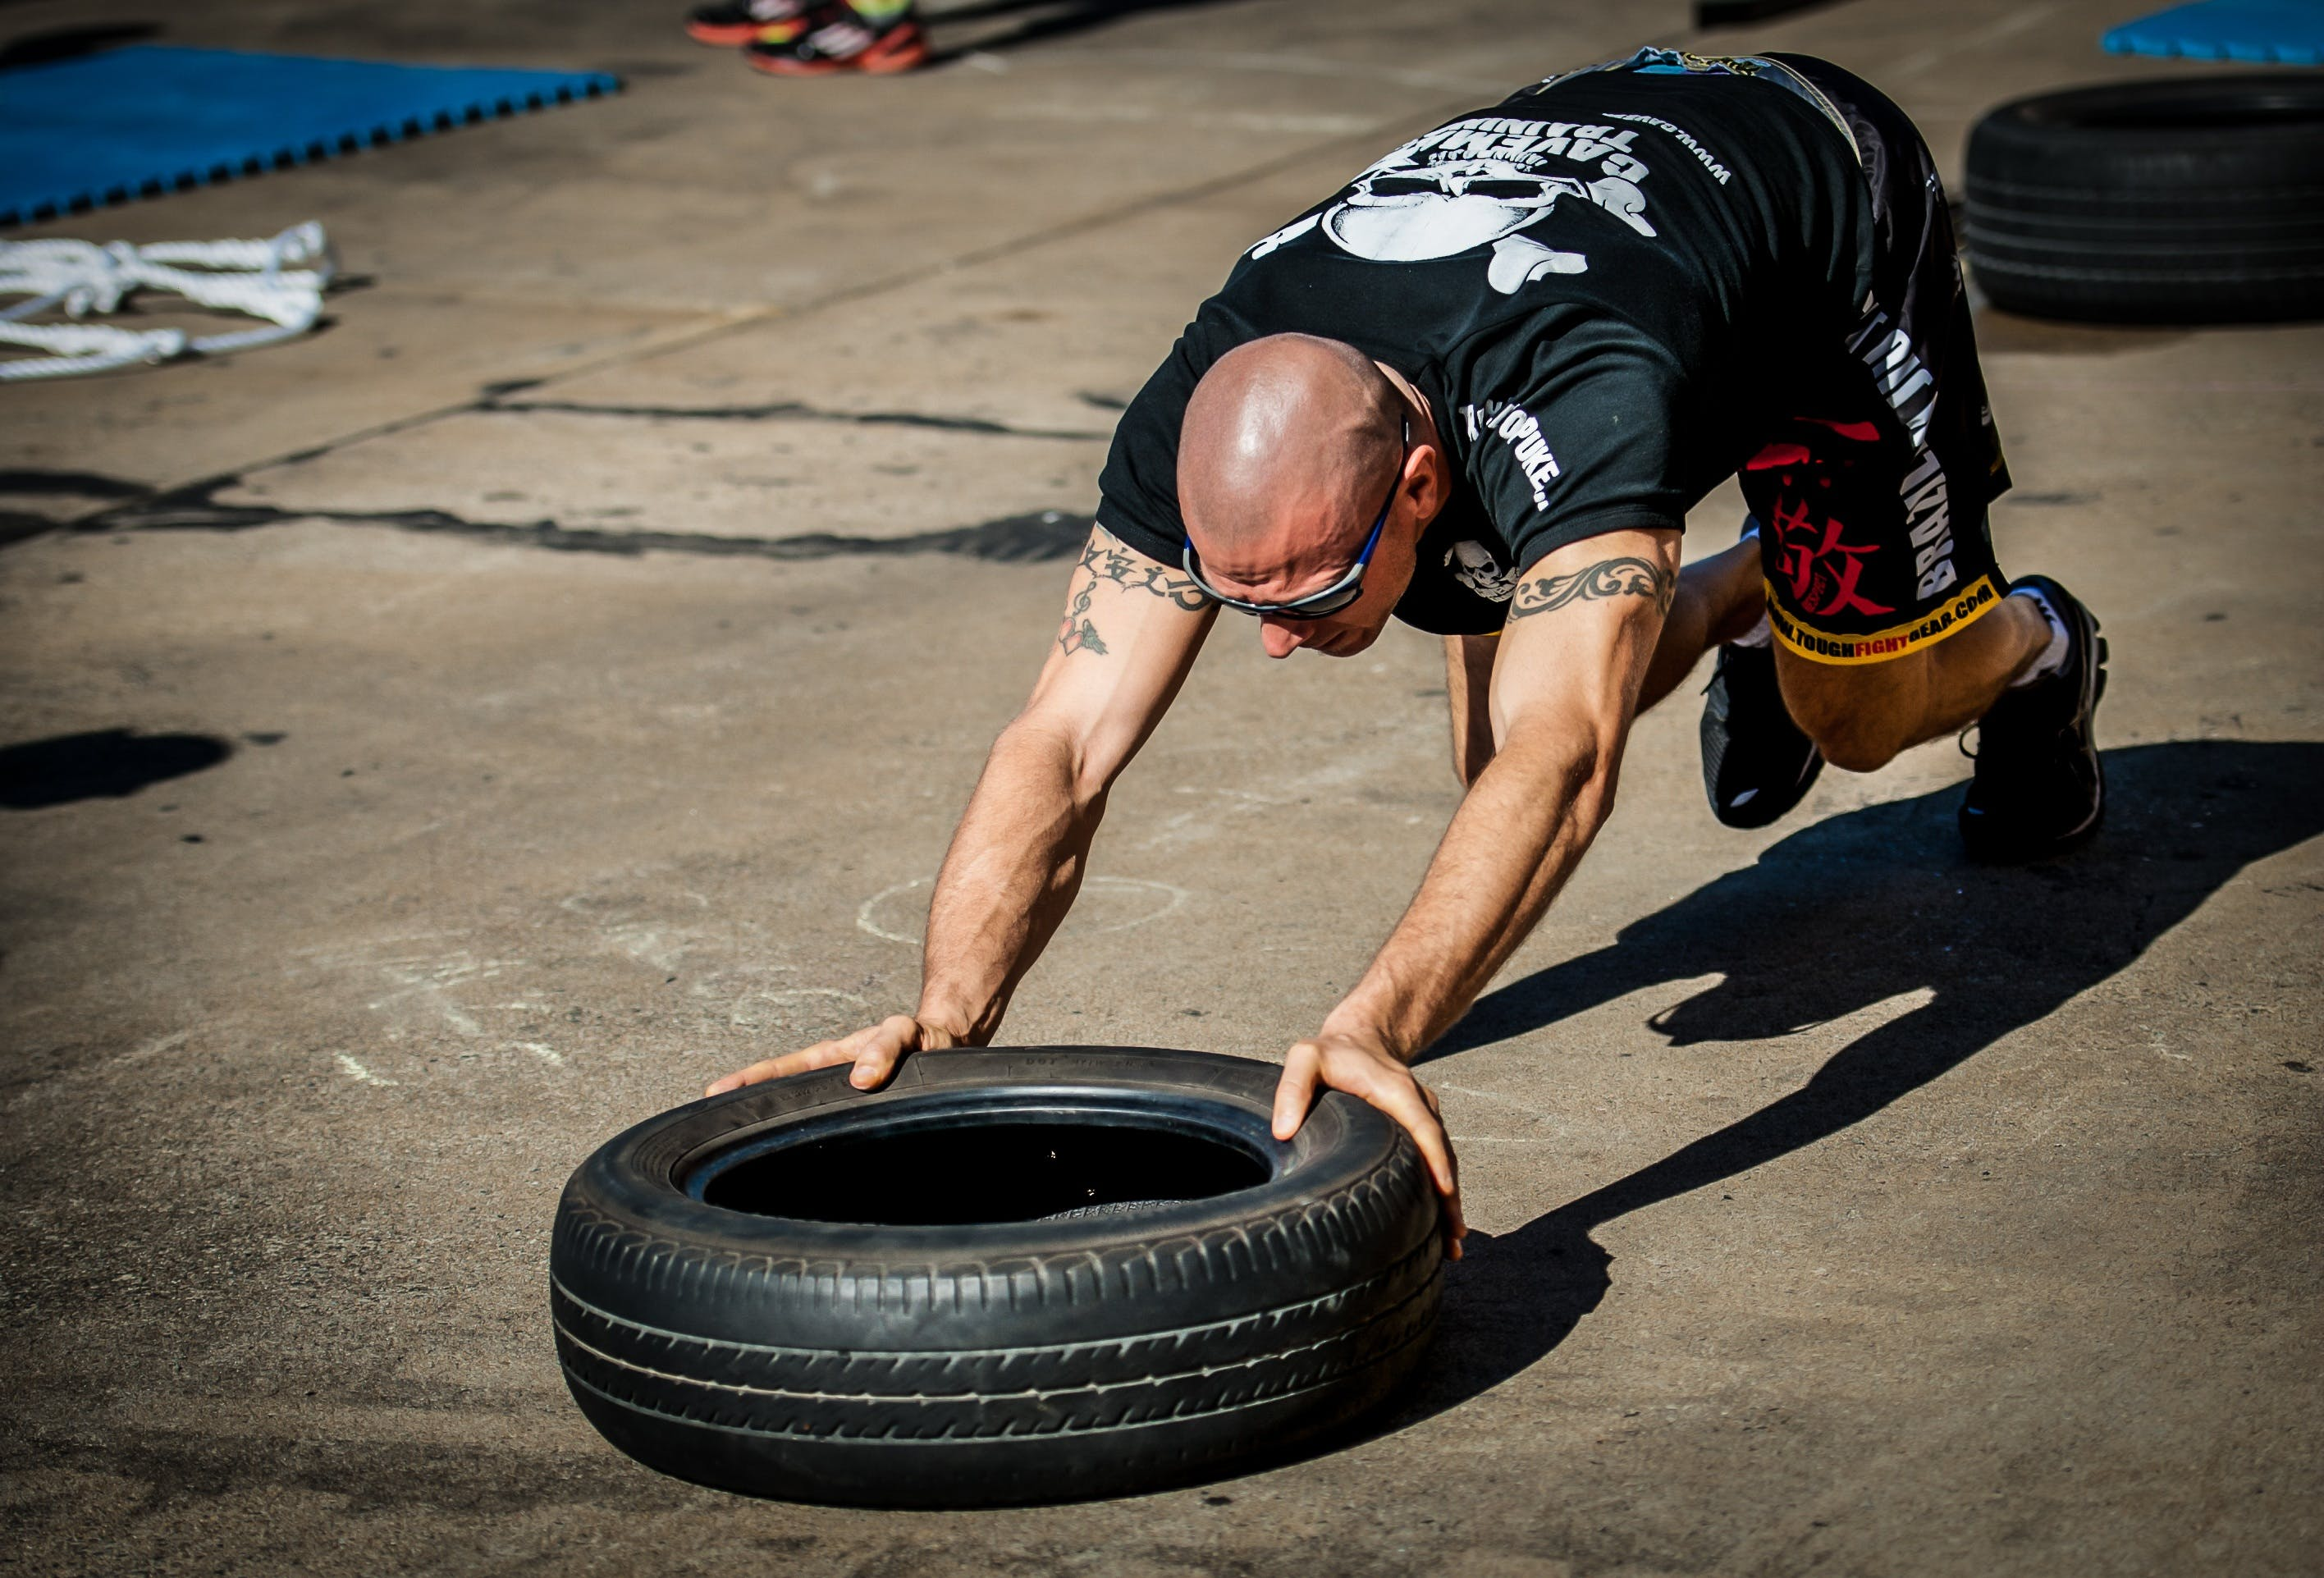 Free stock photo of tire, fitness, athlete, training